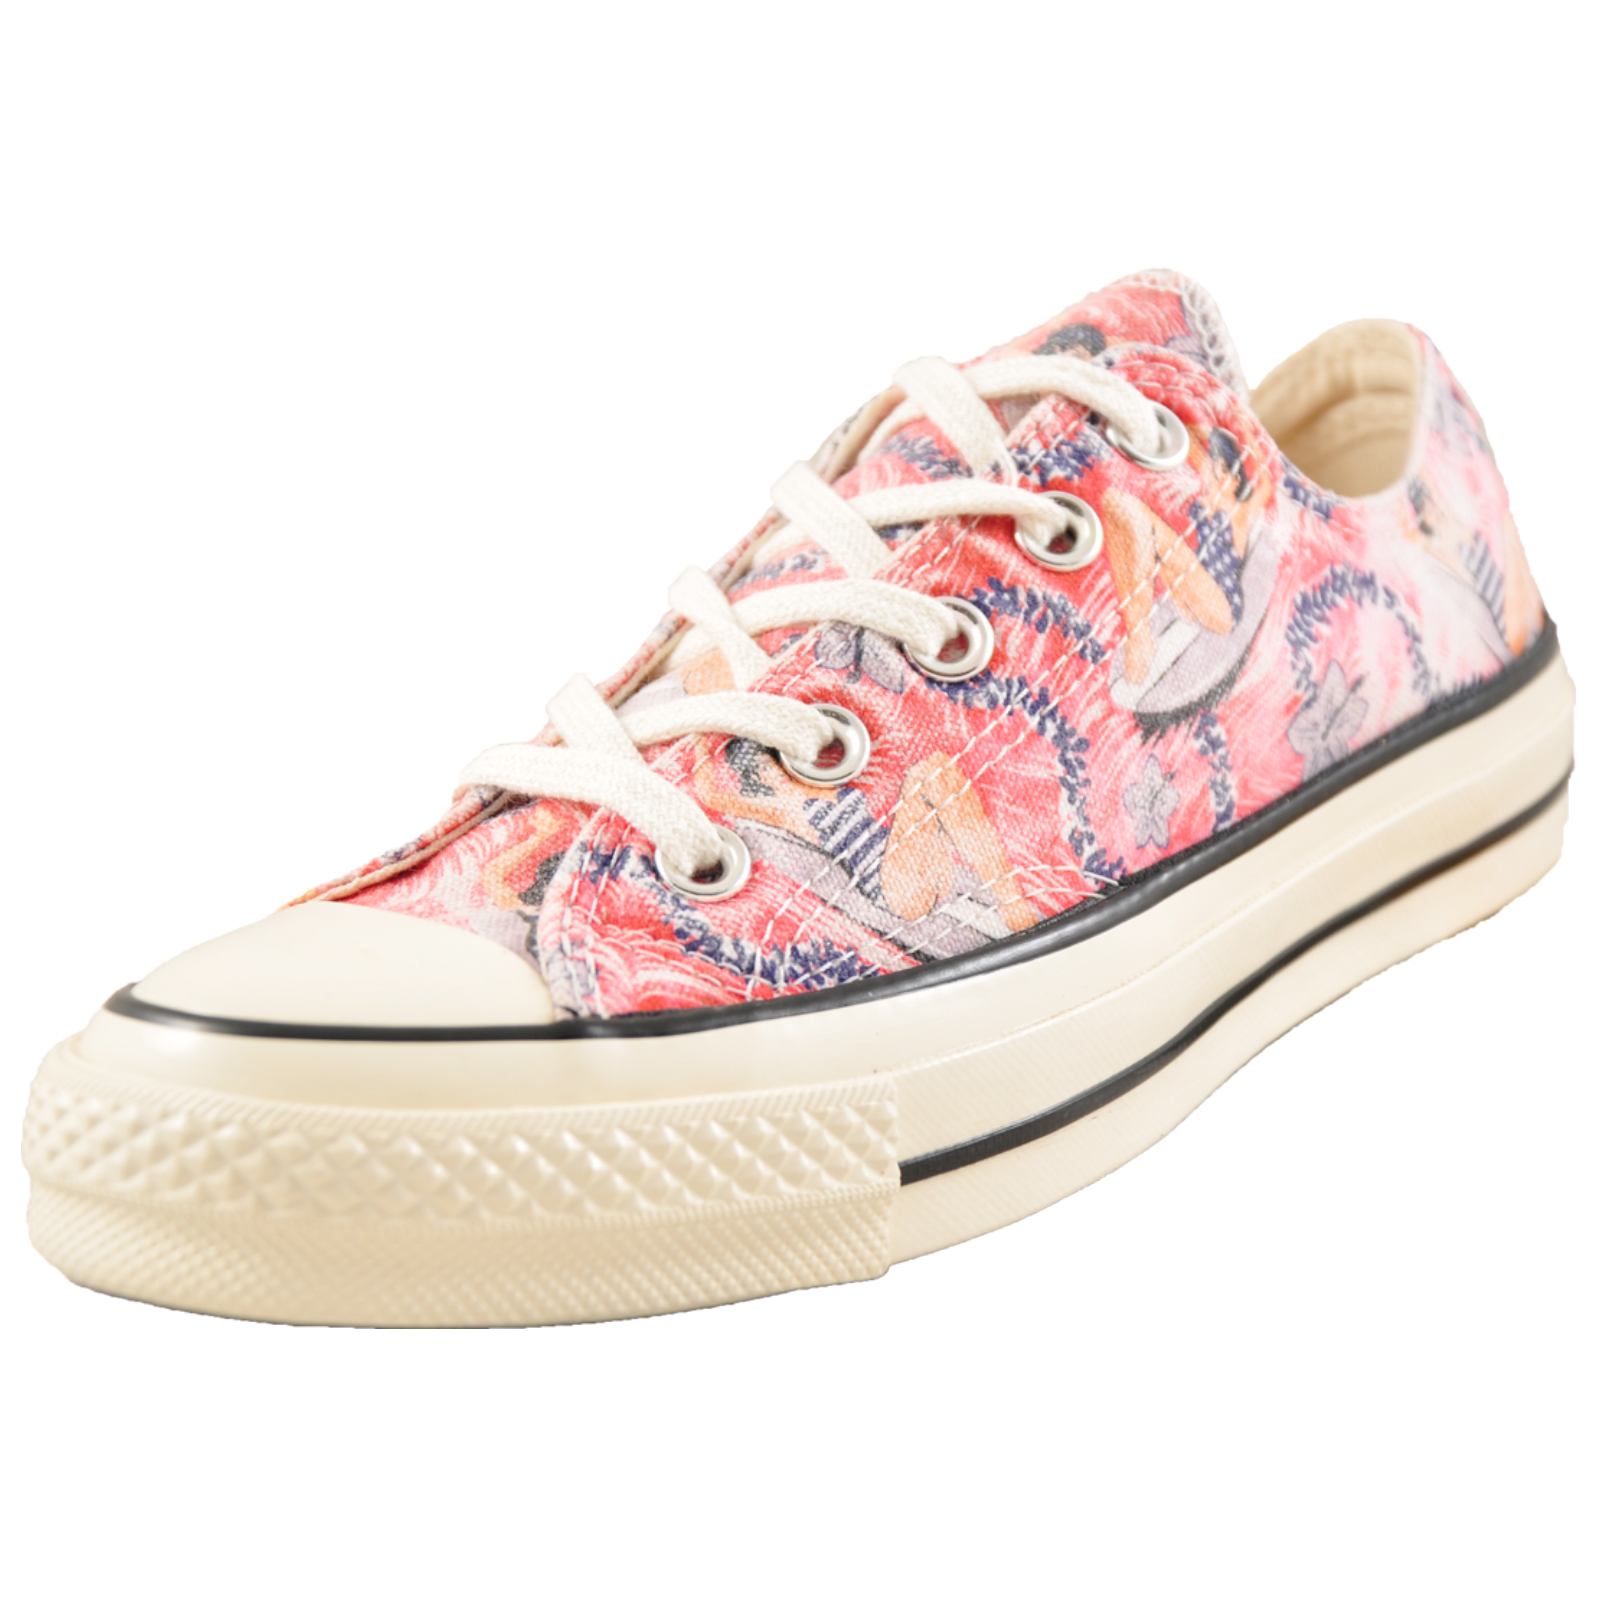 98d648533122 Details about Converse Chuck Taylor All Star 70 Ox Casino Canvas Women s  Plimsols Trainers